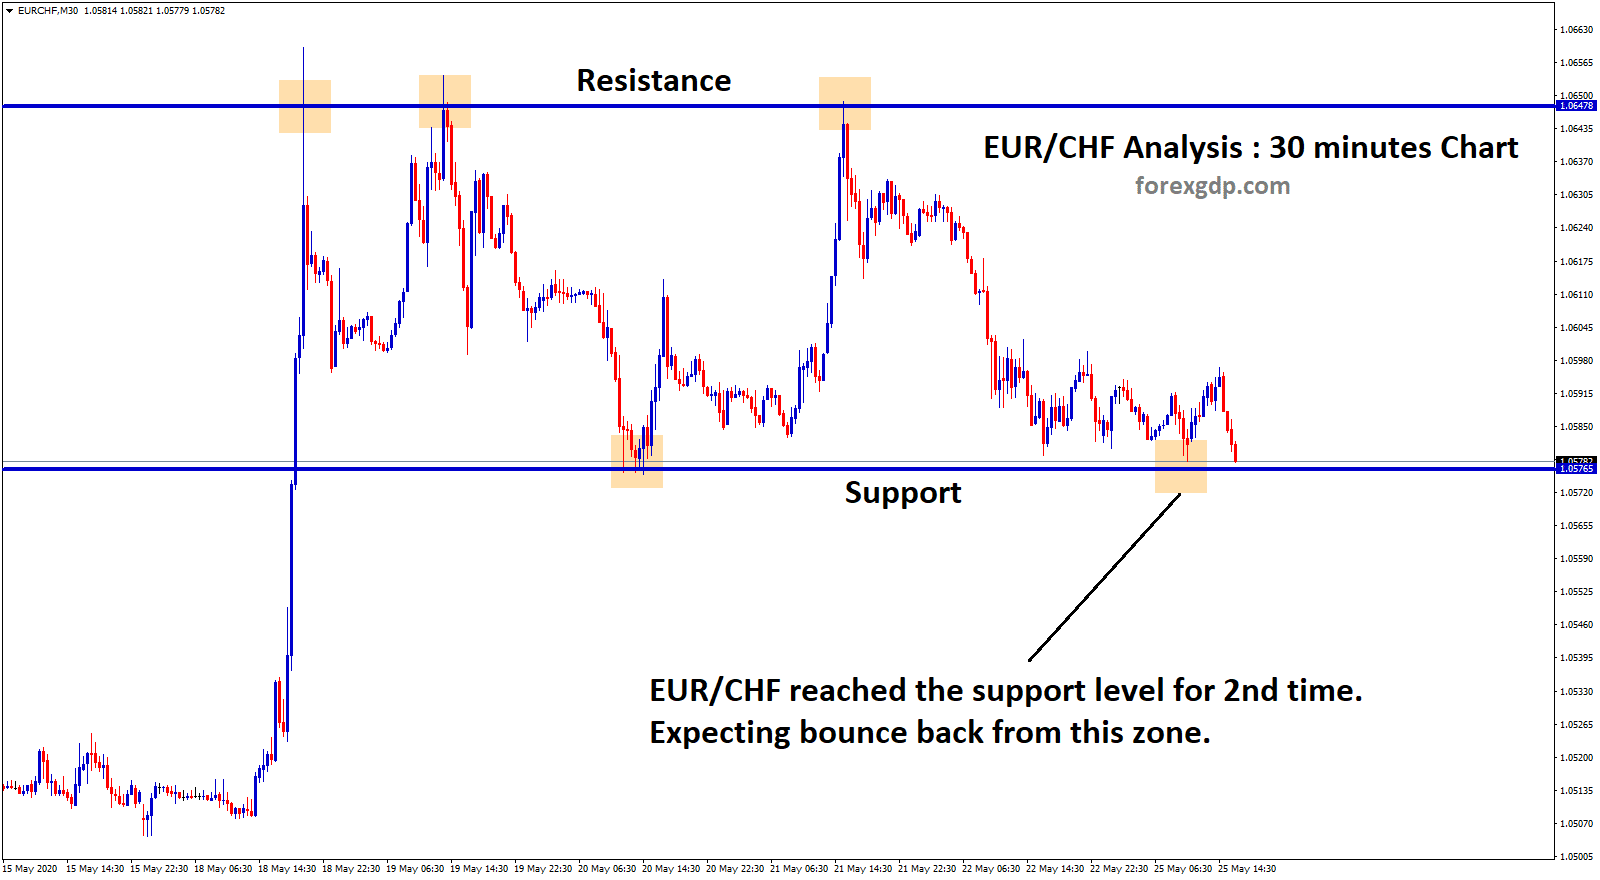 EURCHF support level reached in 30 minute chart